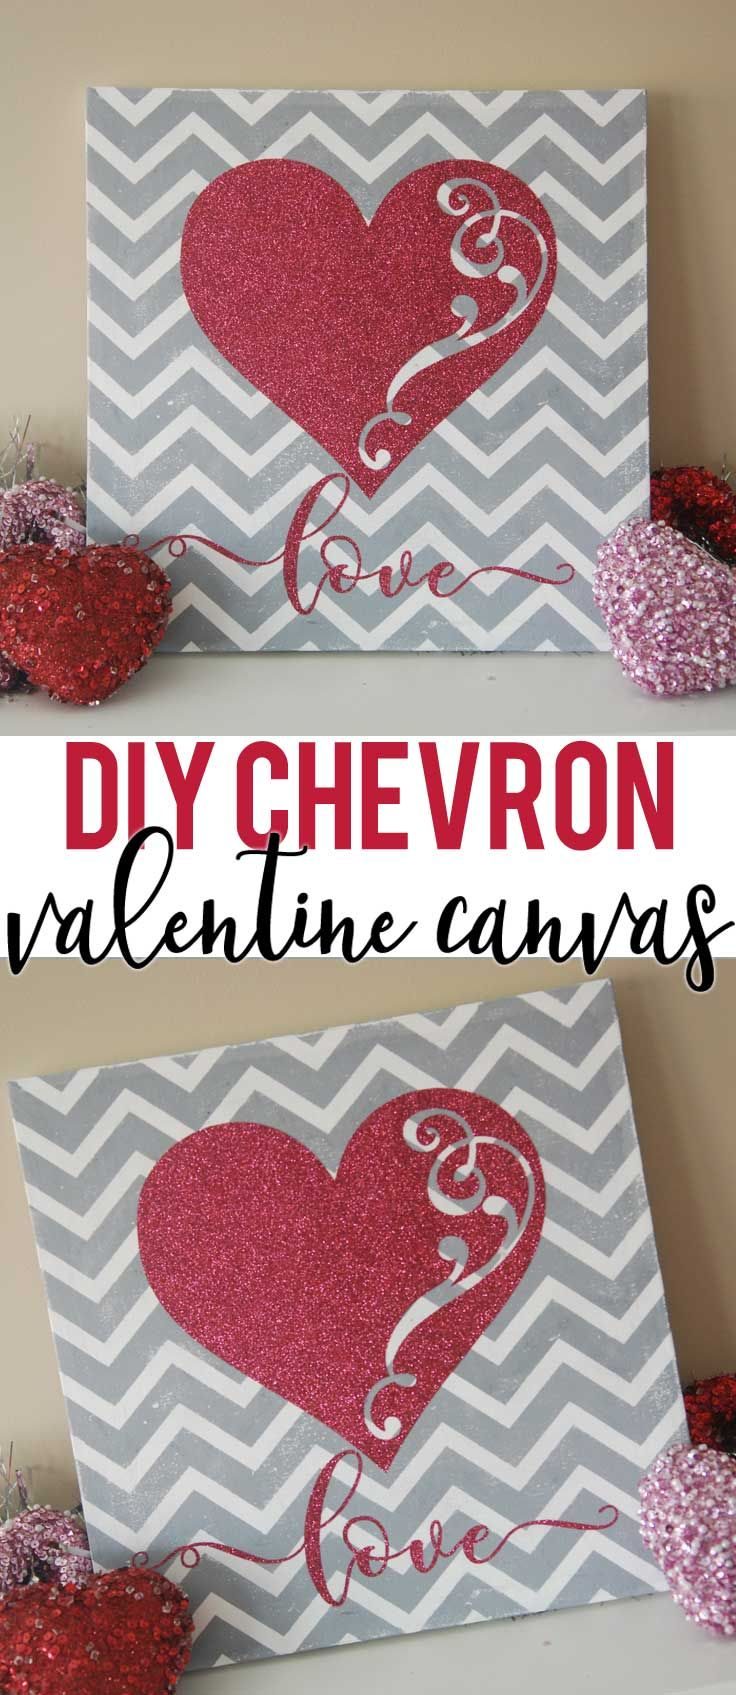 Make this chevron Valentine canvas with your SIlhouette or Cricut cutter. Check out the tutorial and download the Free Valentine SVG file!